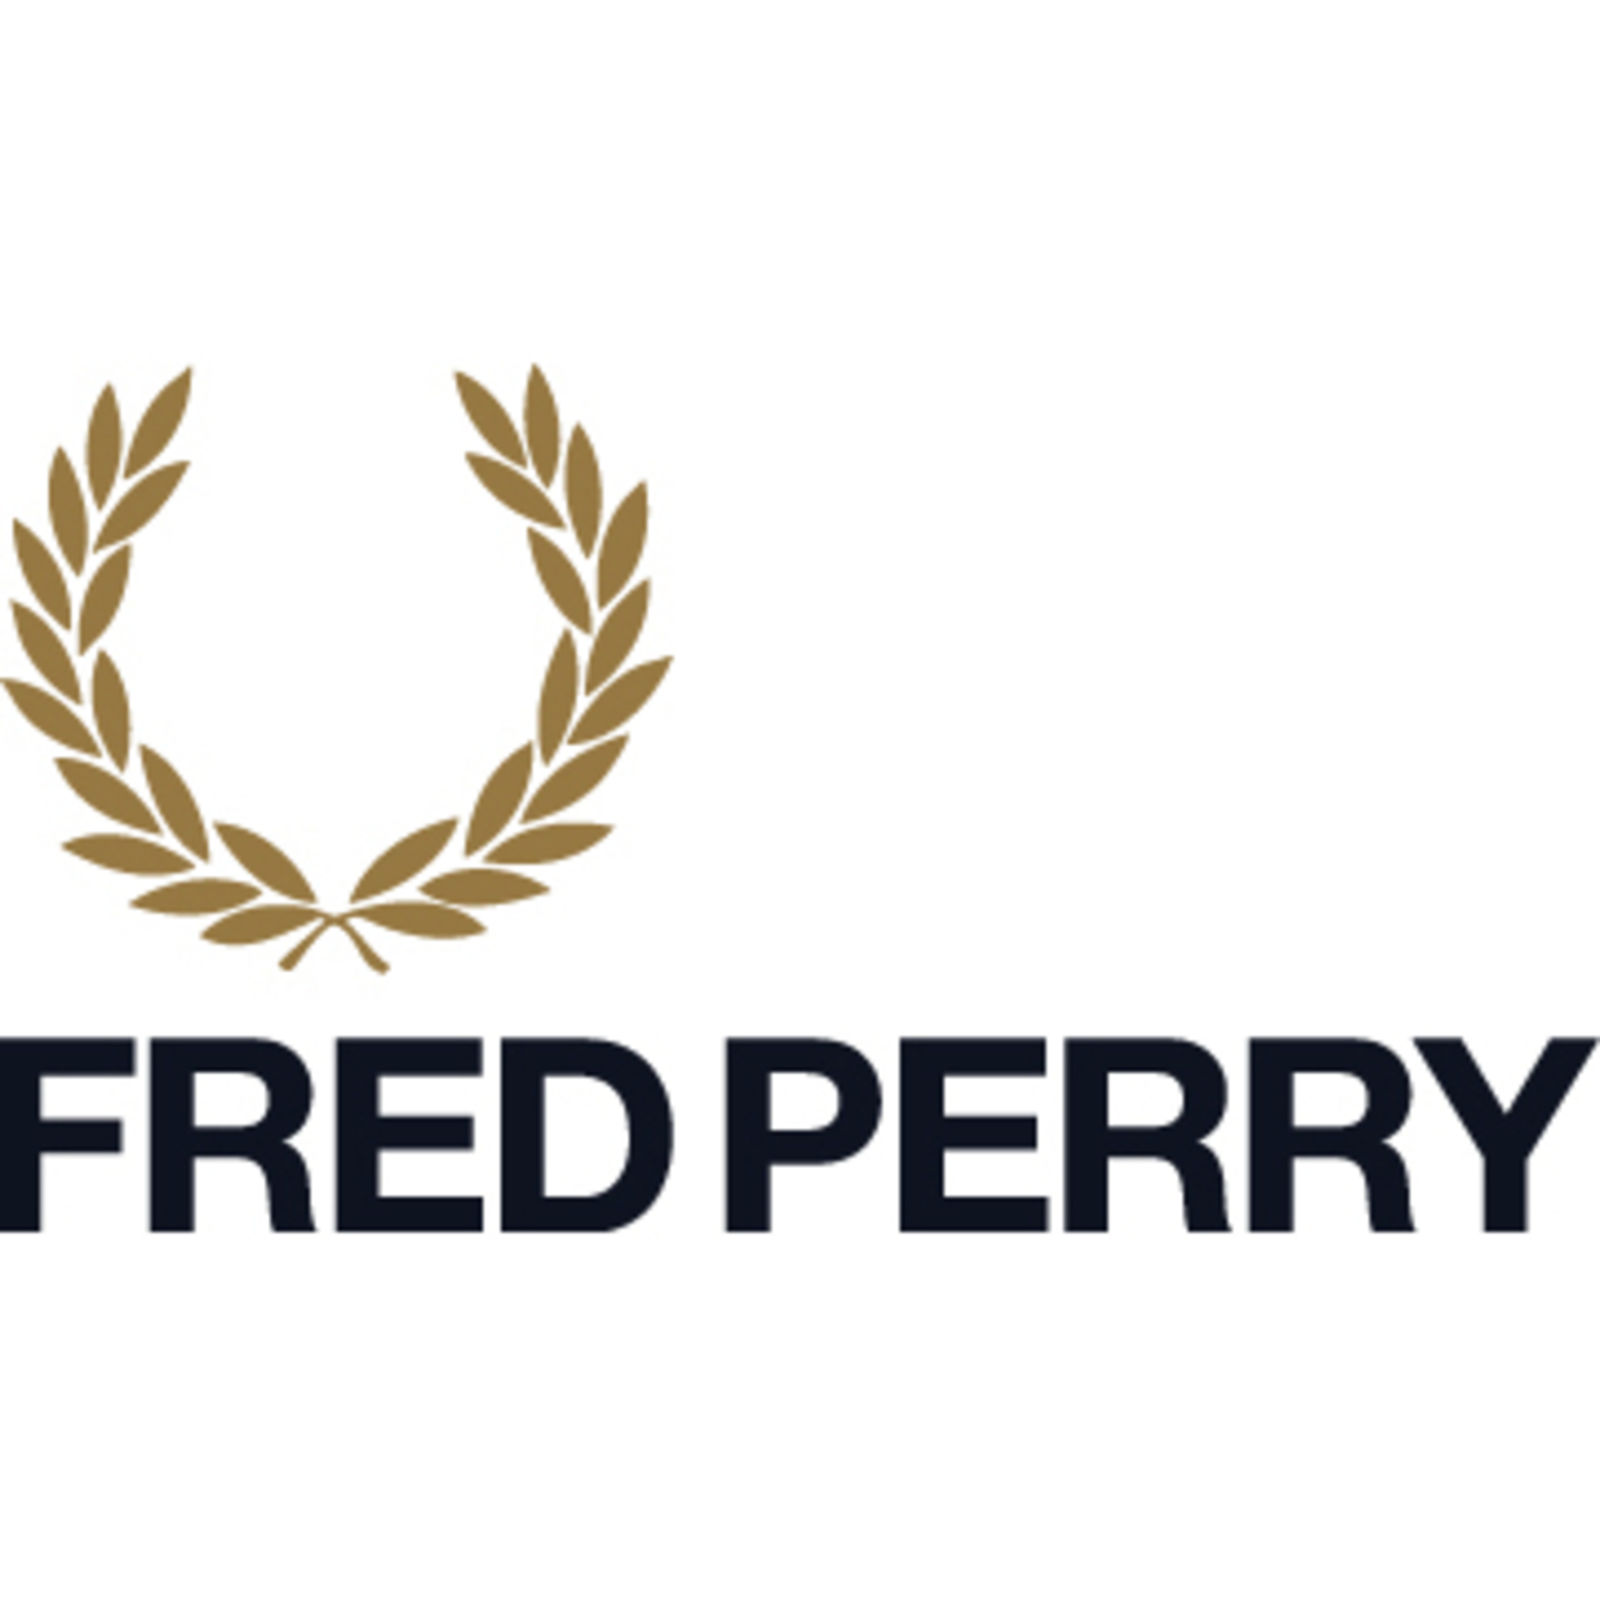 FRED PERRY Authentic (Bild 1)